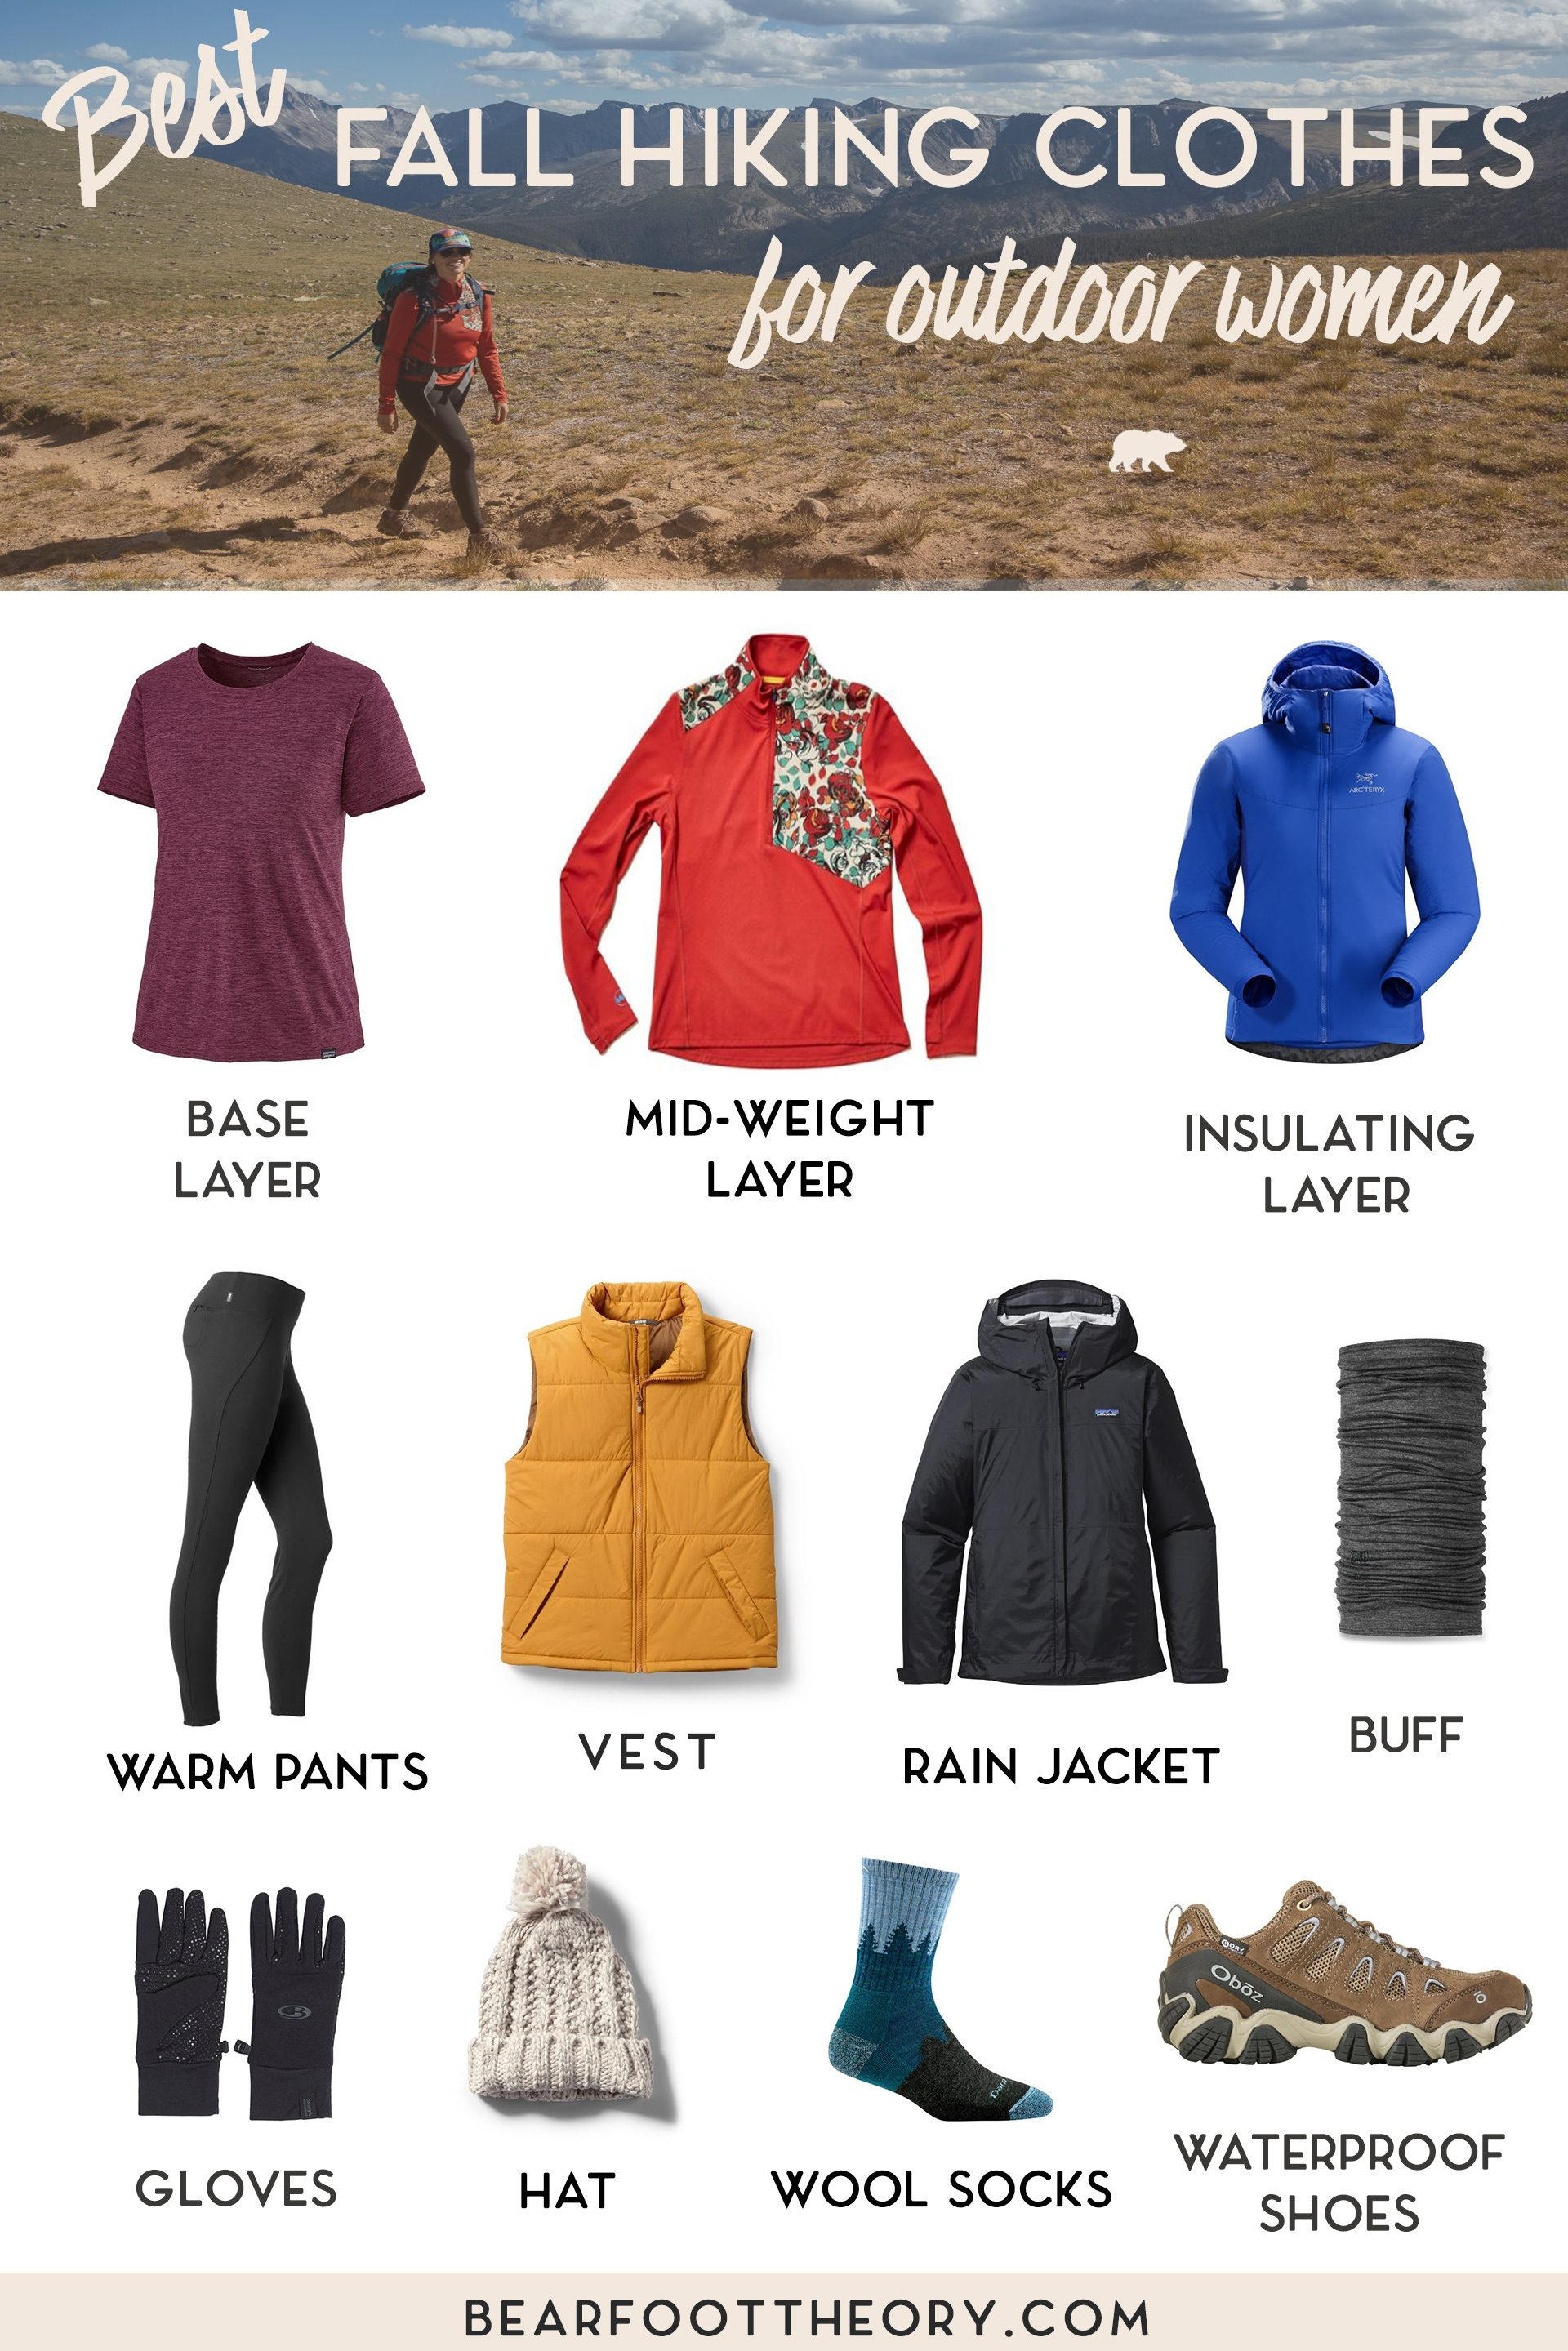 Learn what to wear hiking in fall with our checklist of the best fall hiking clothes for women that are breathable, wick sweat, keep you warm AND look good.